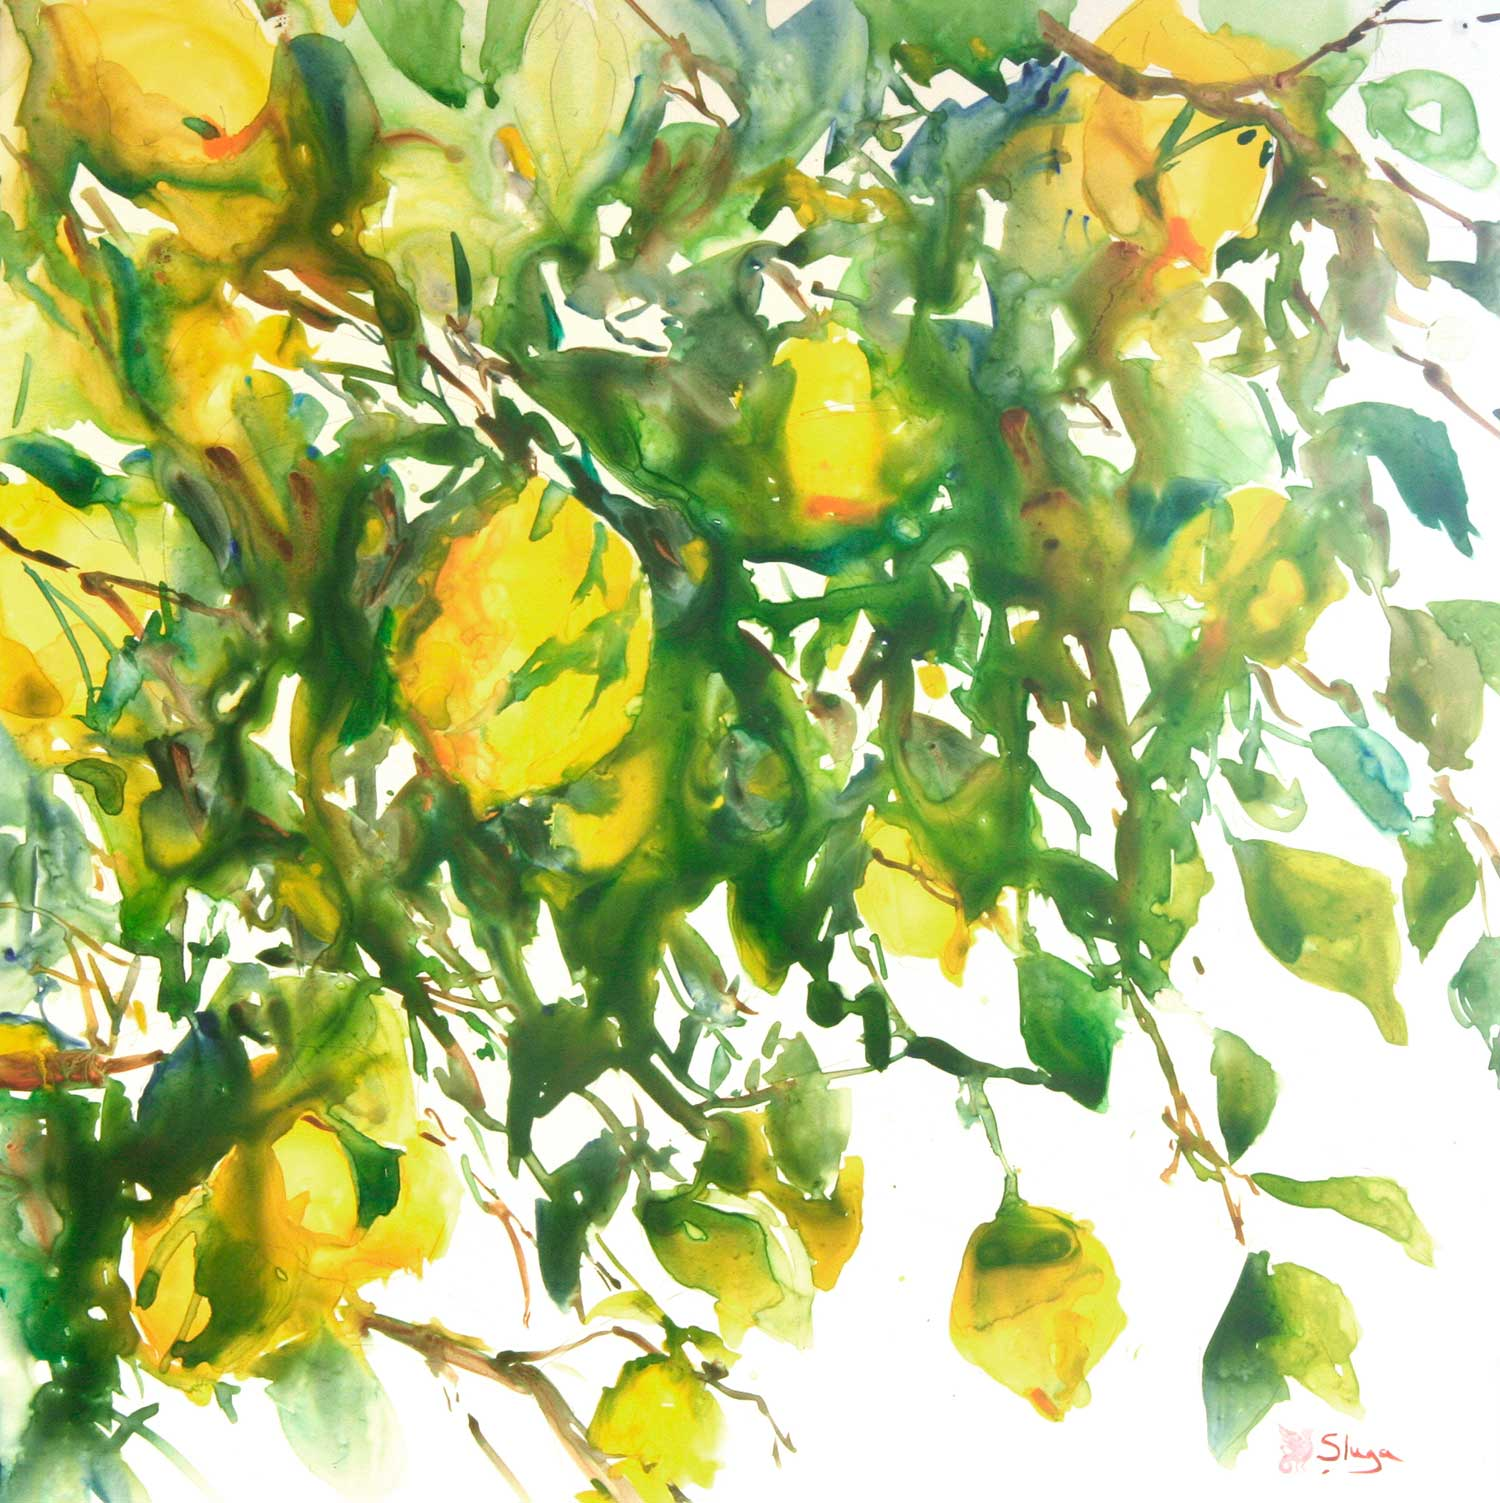 THROUGH-THE-LEMON-TREE.jpg